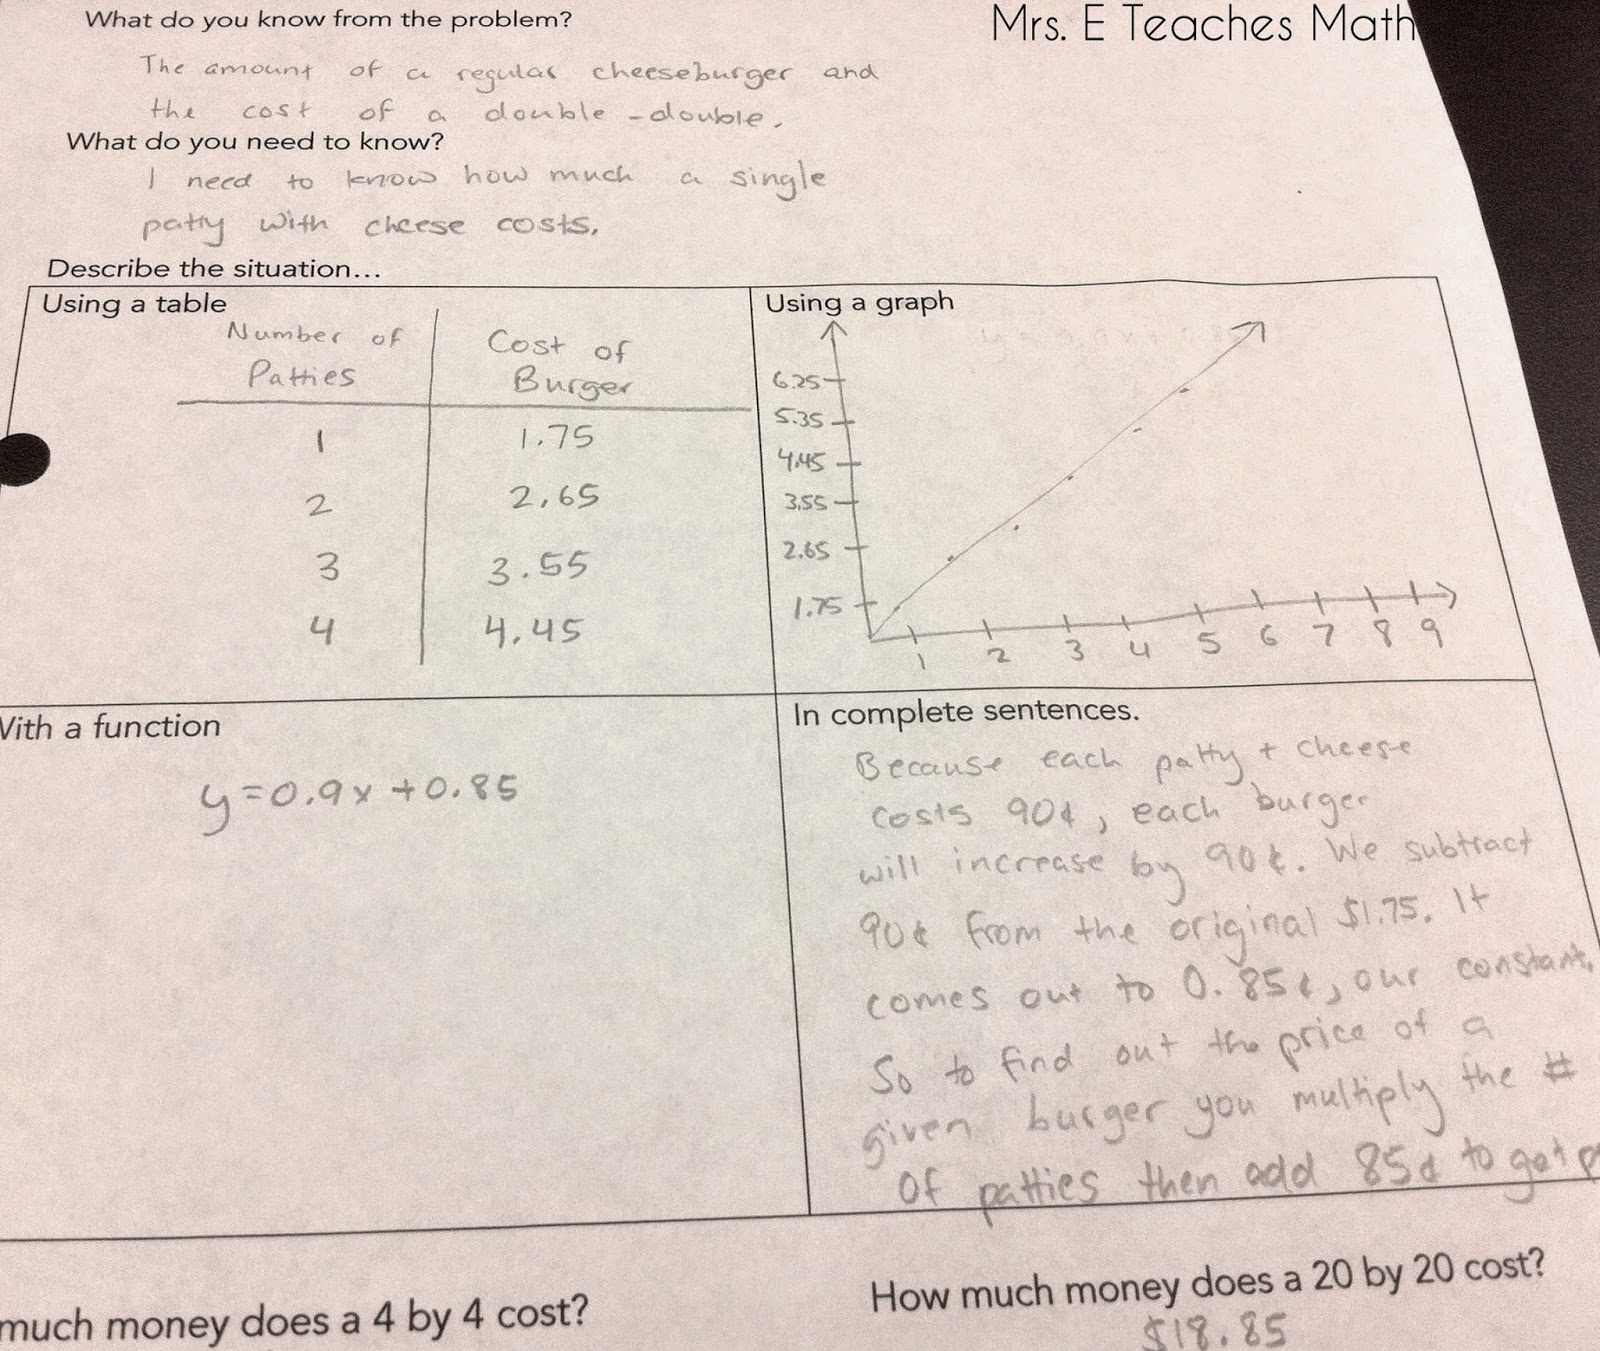 Building Linear Functions - Authentic Math Task Lesson Reflection    mrseteachesmath.blogspot.com